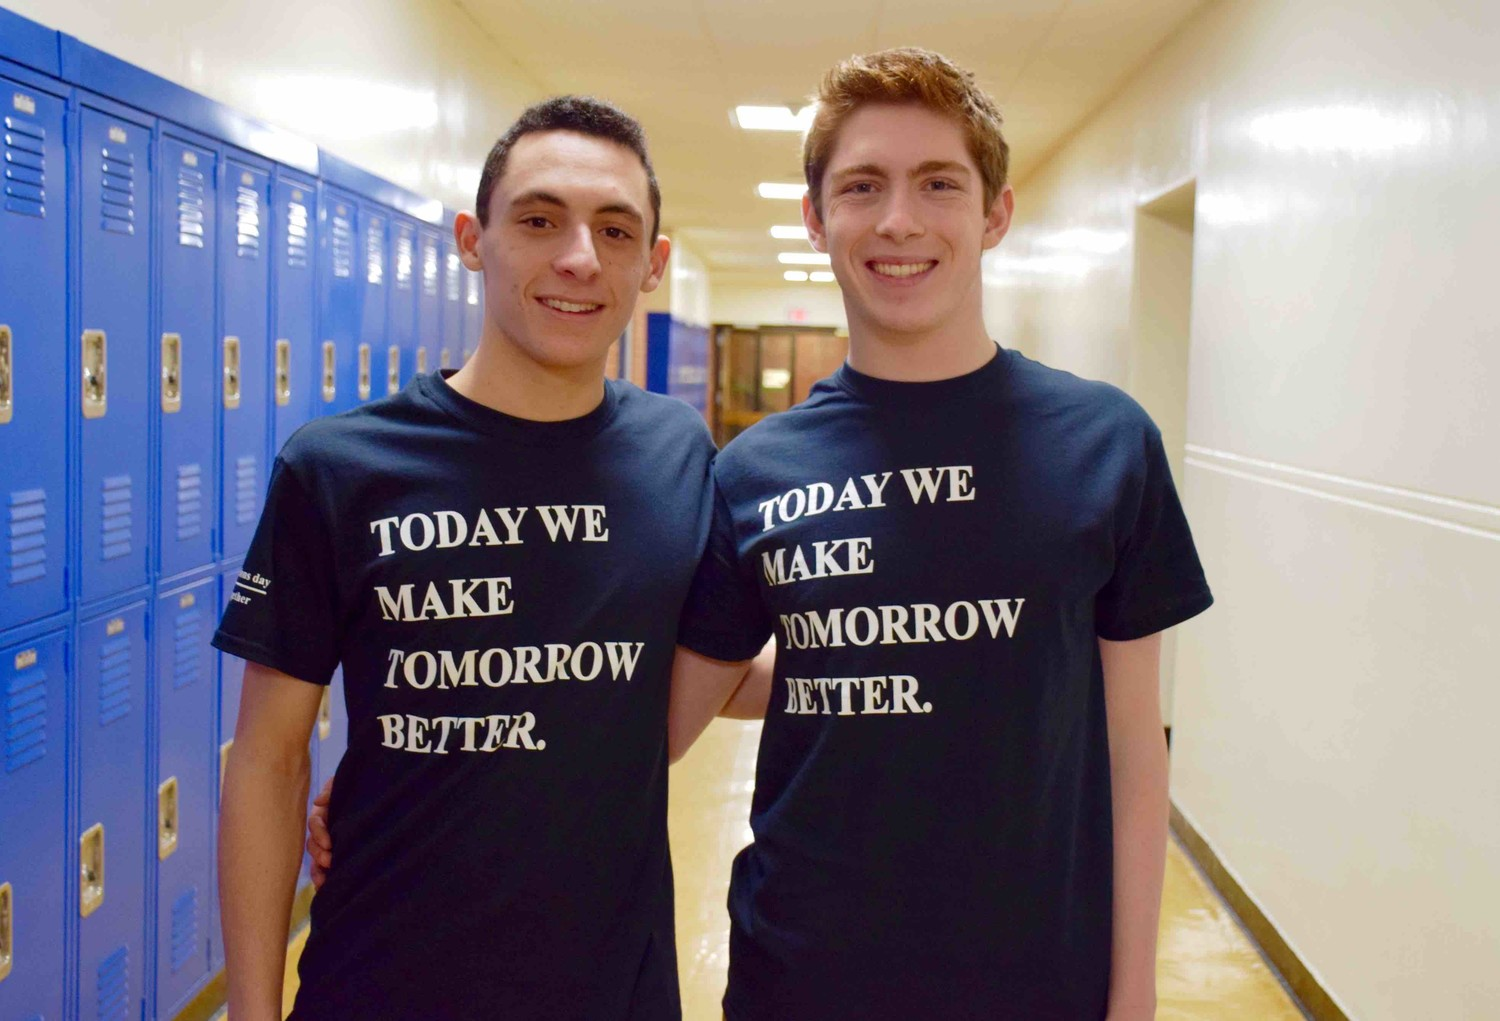 Dustin Mandell, left, and Jack Hunter were named valedictorian and salutatorian, respectively, for Lynbrook's class of 2018.